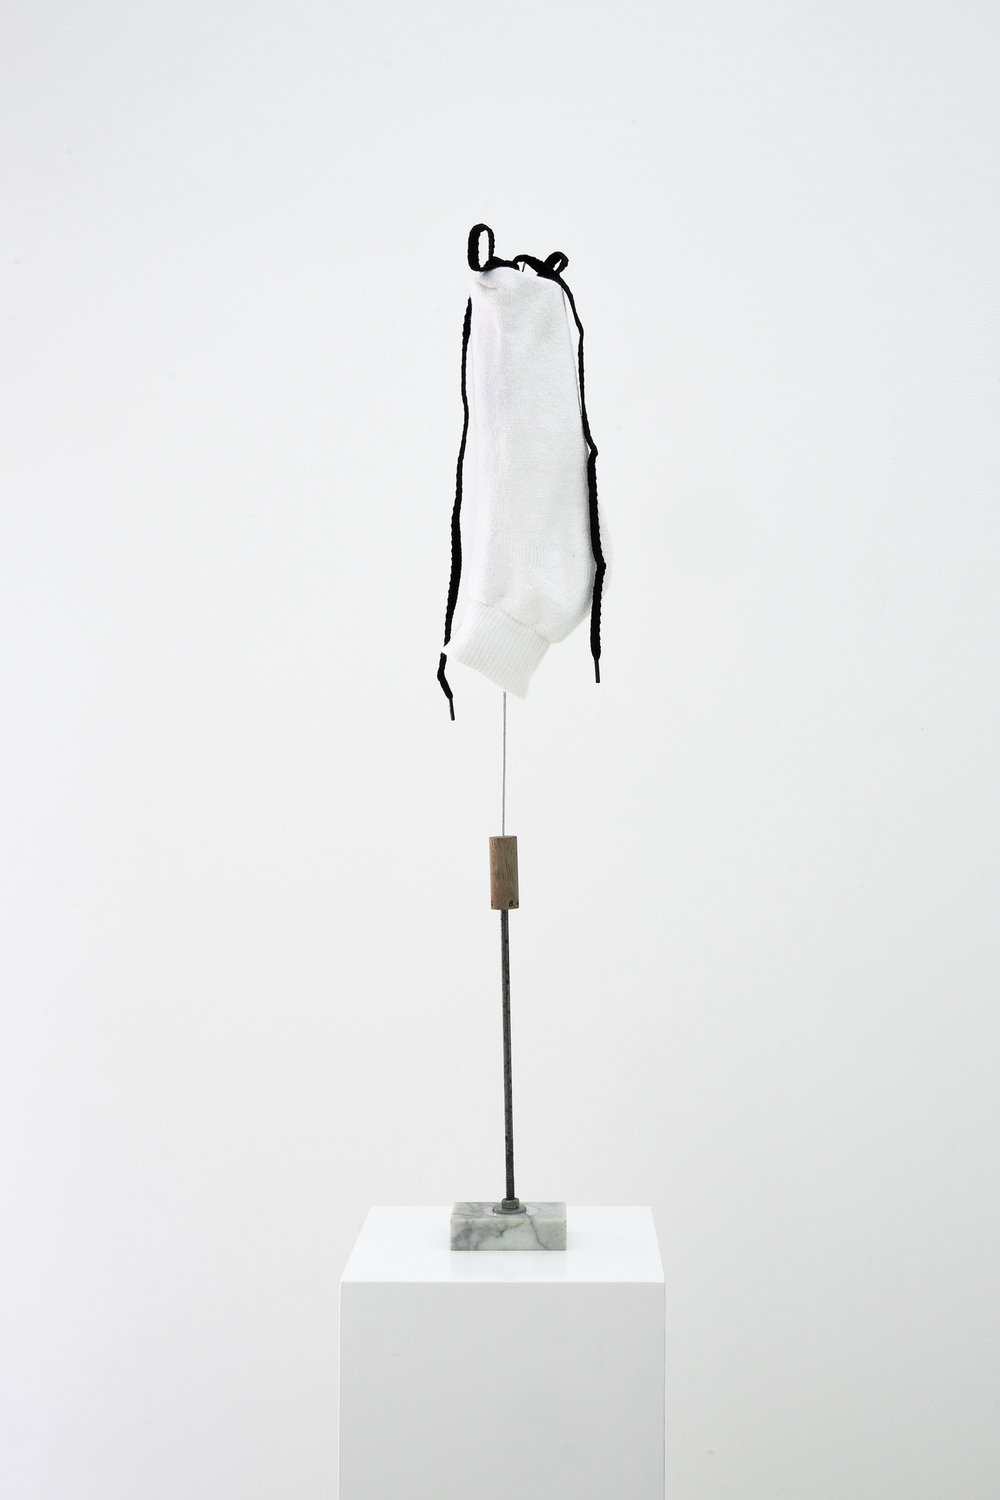 Untitled (White sock), 2016, Cotton sock, shoelace, marble, wire, metal, wood, and thread, 66 x 7.75 x 5 cm (26 x 3 x 2 in)